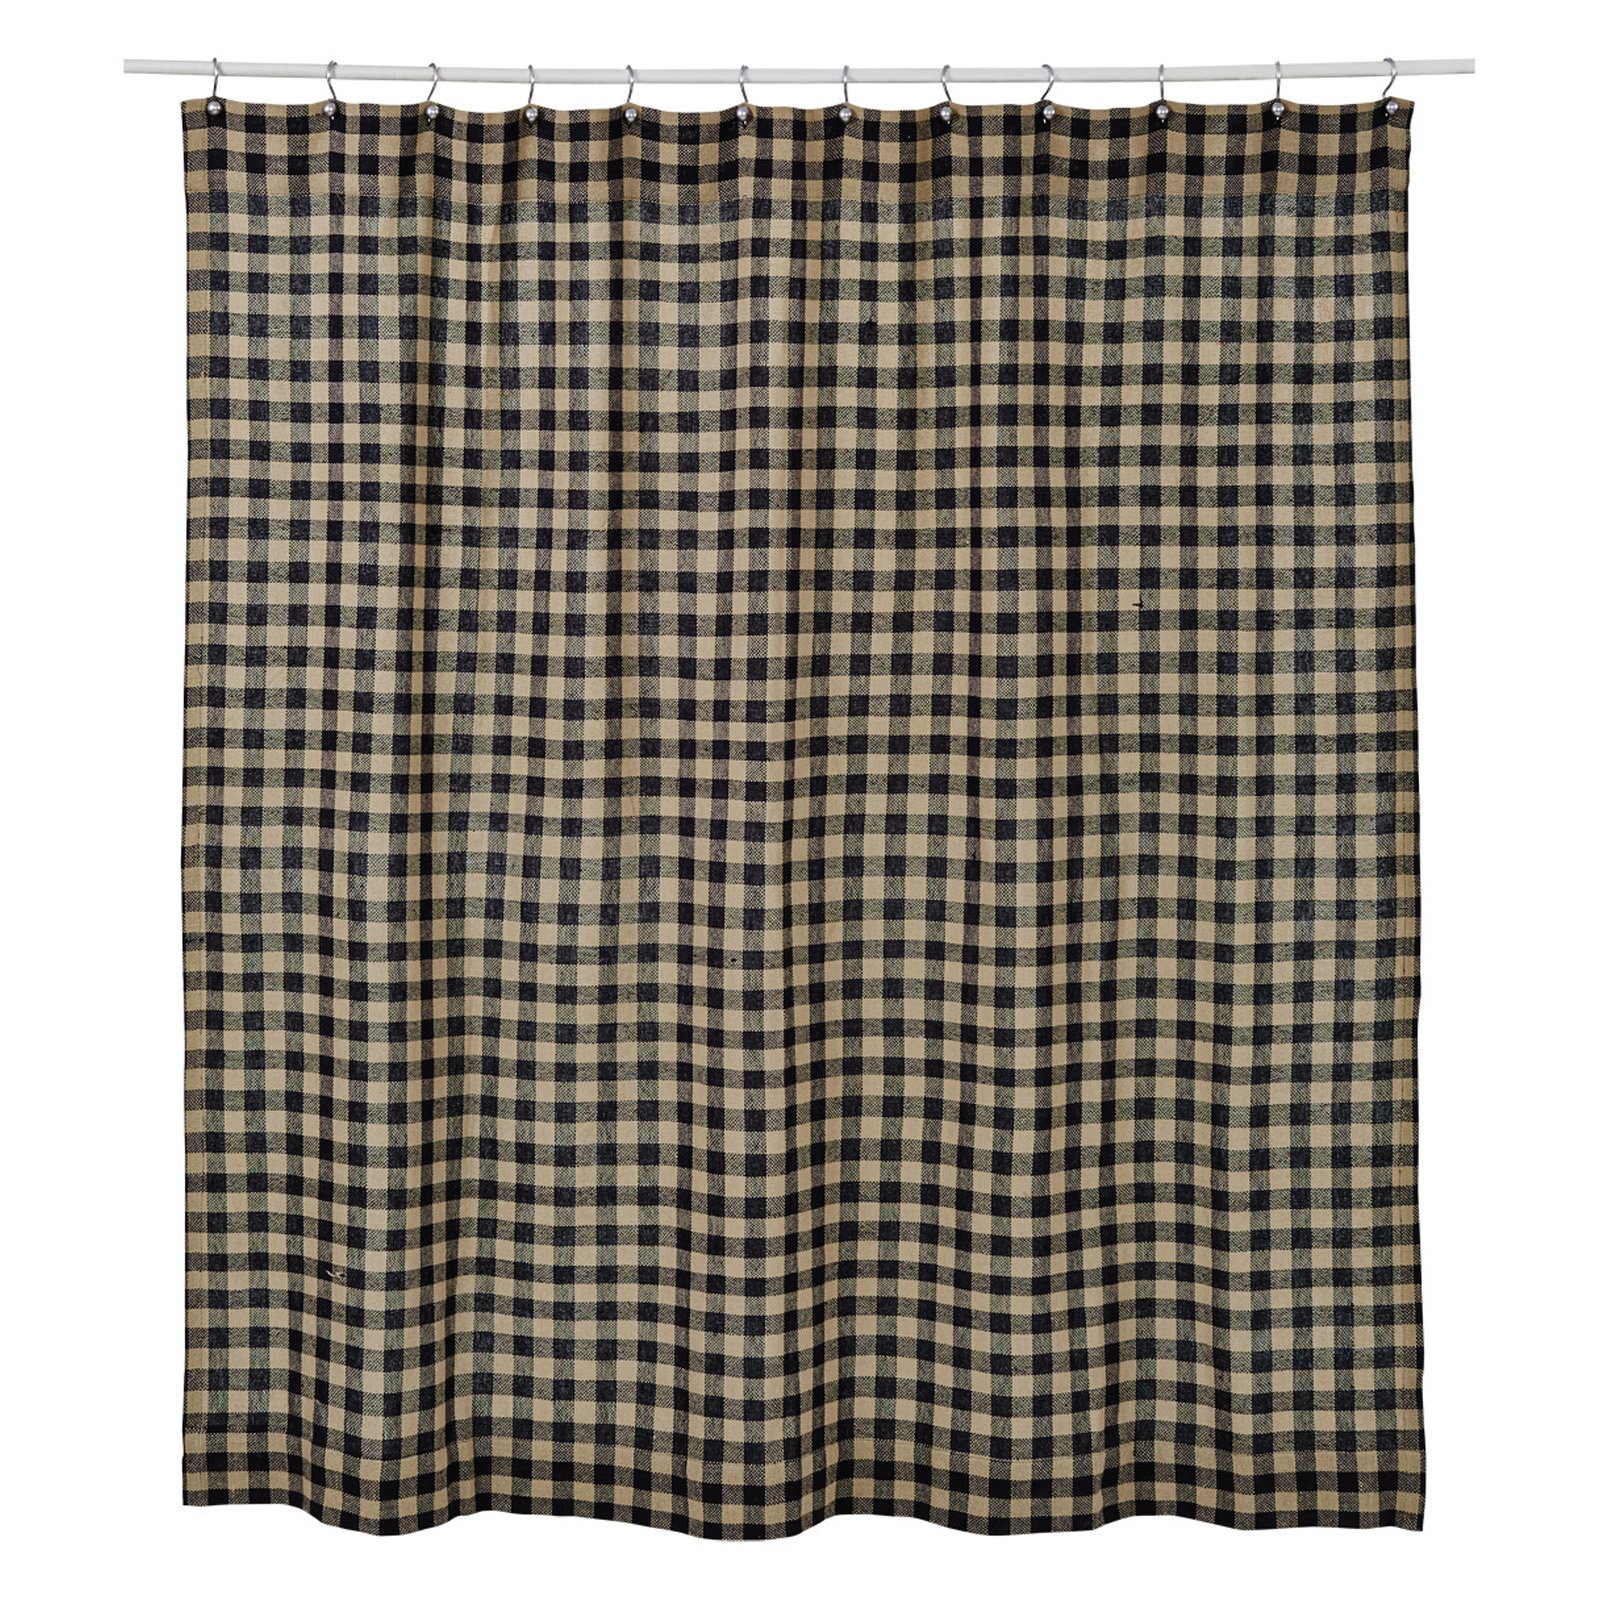 VHC Burlap Black Check Shower Curtain